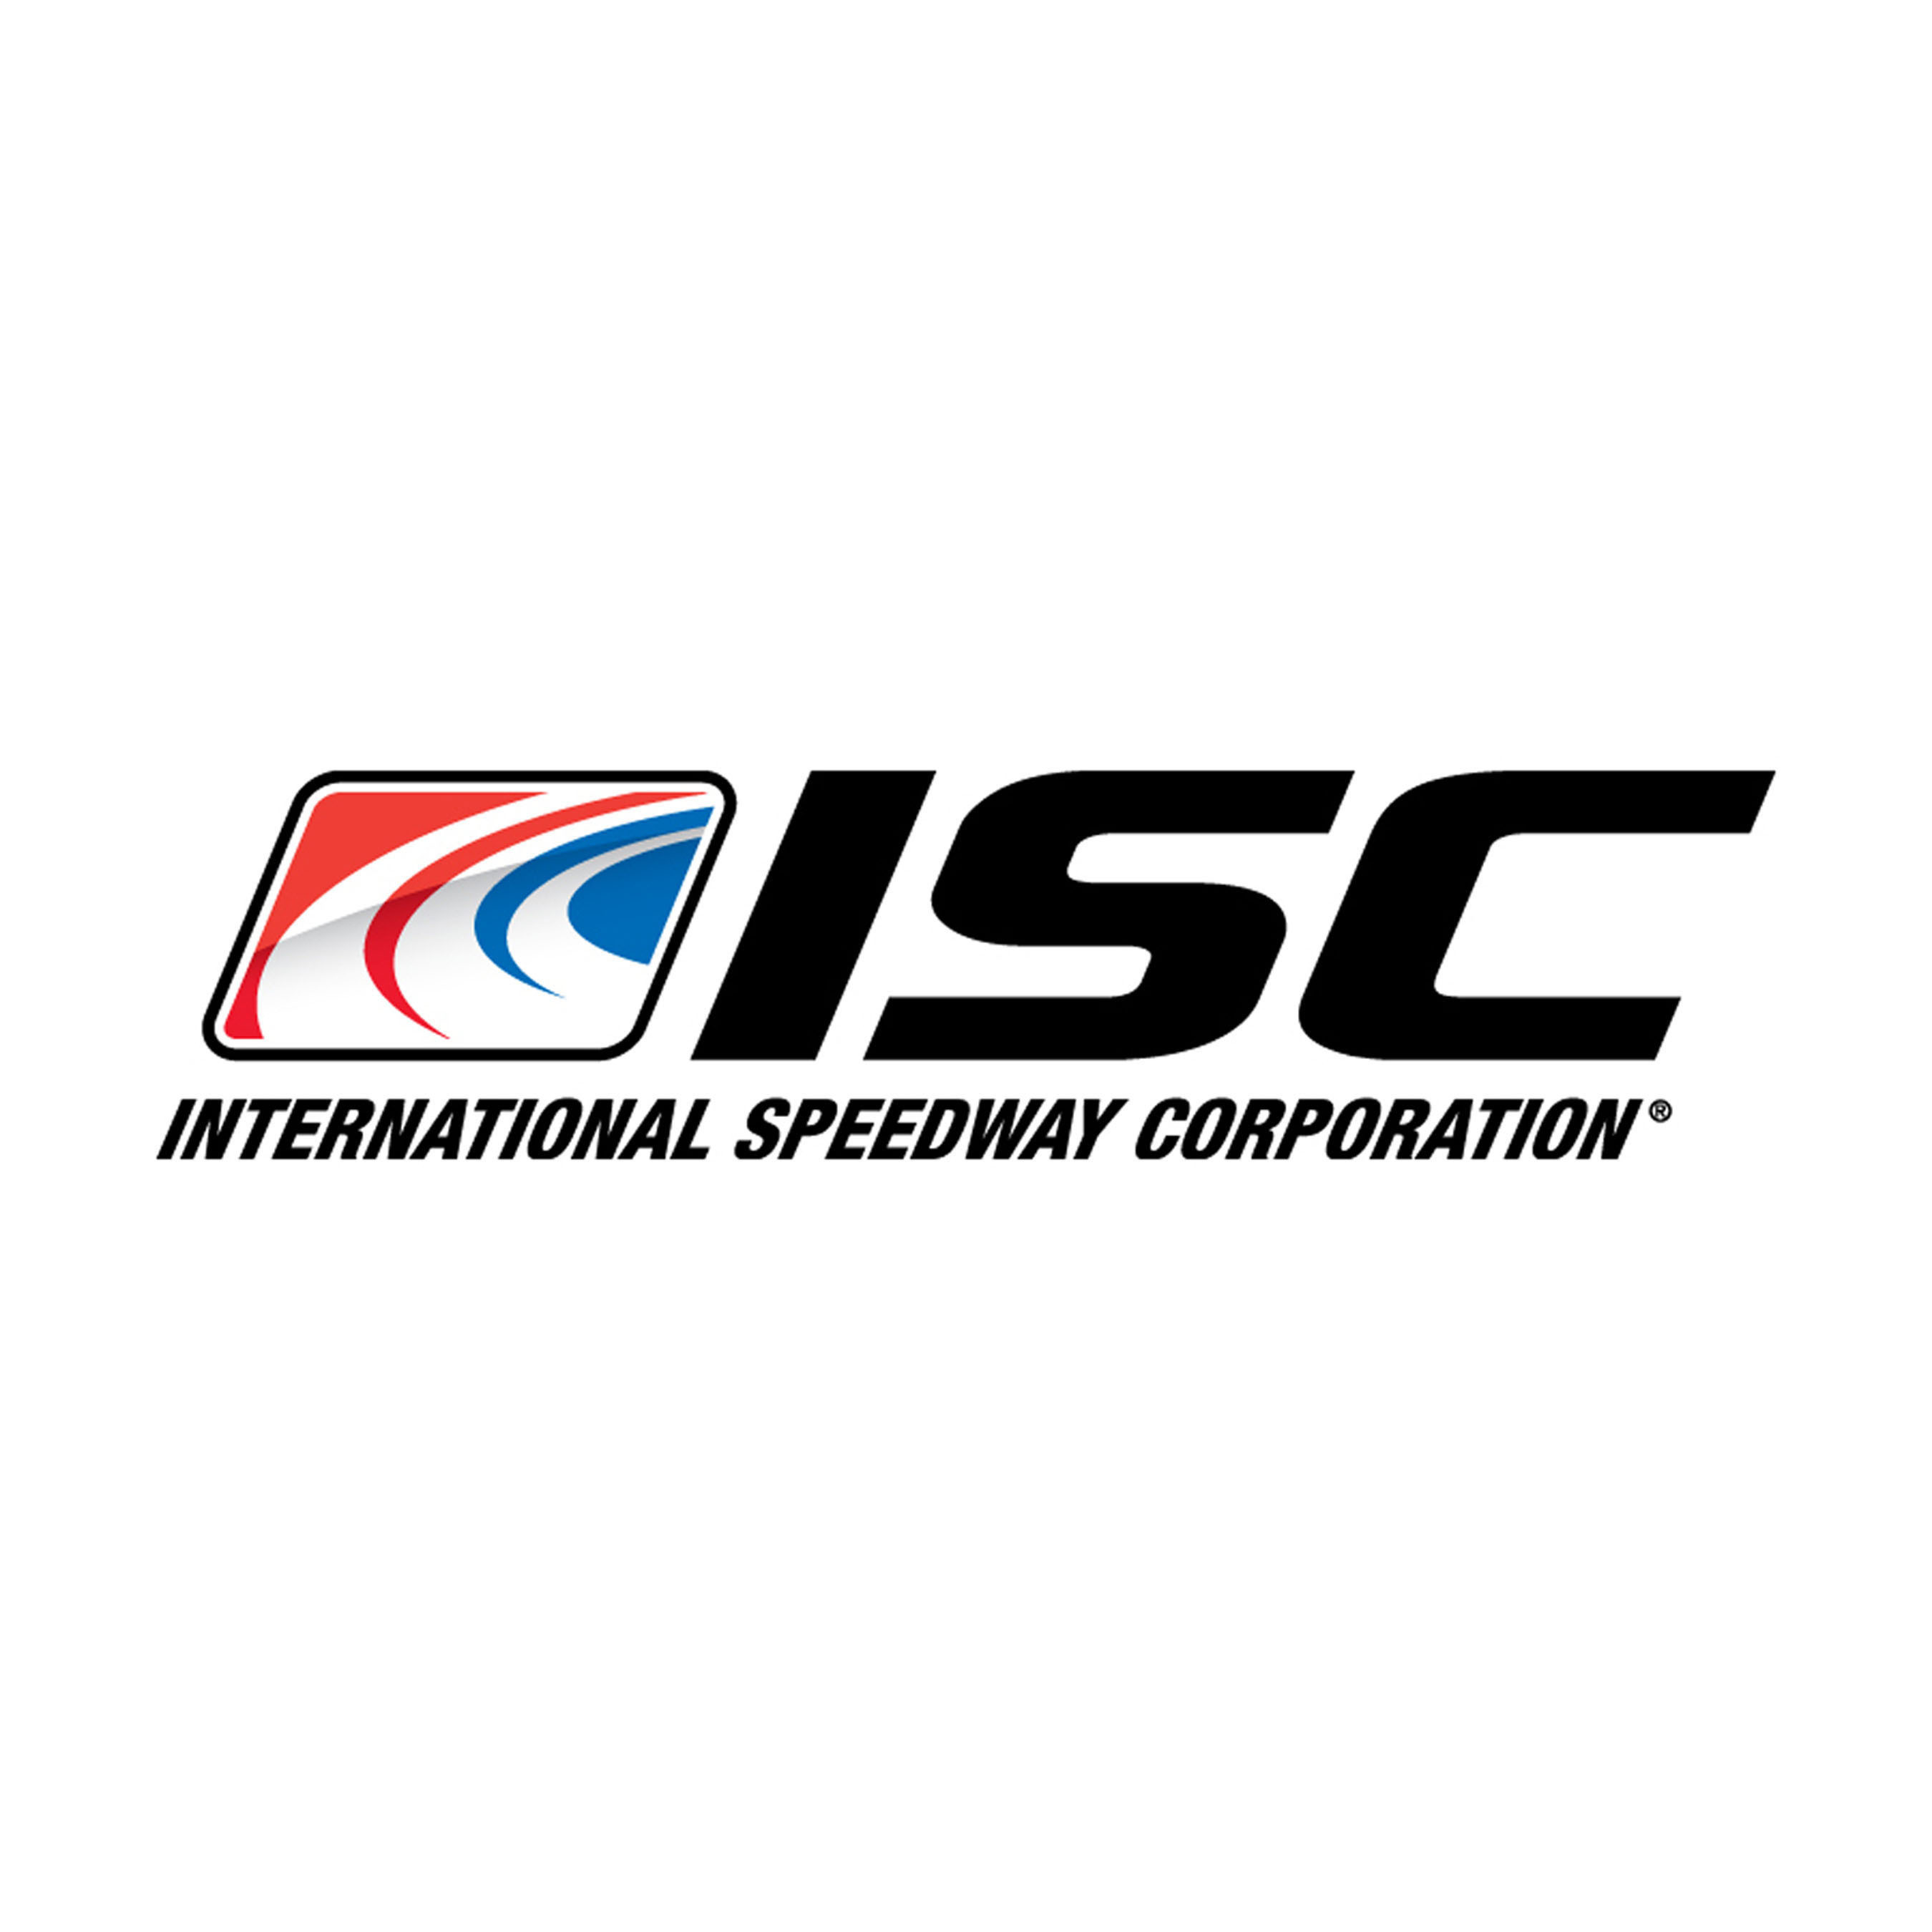 International Speedway Corporation New Corporate Logo.